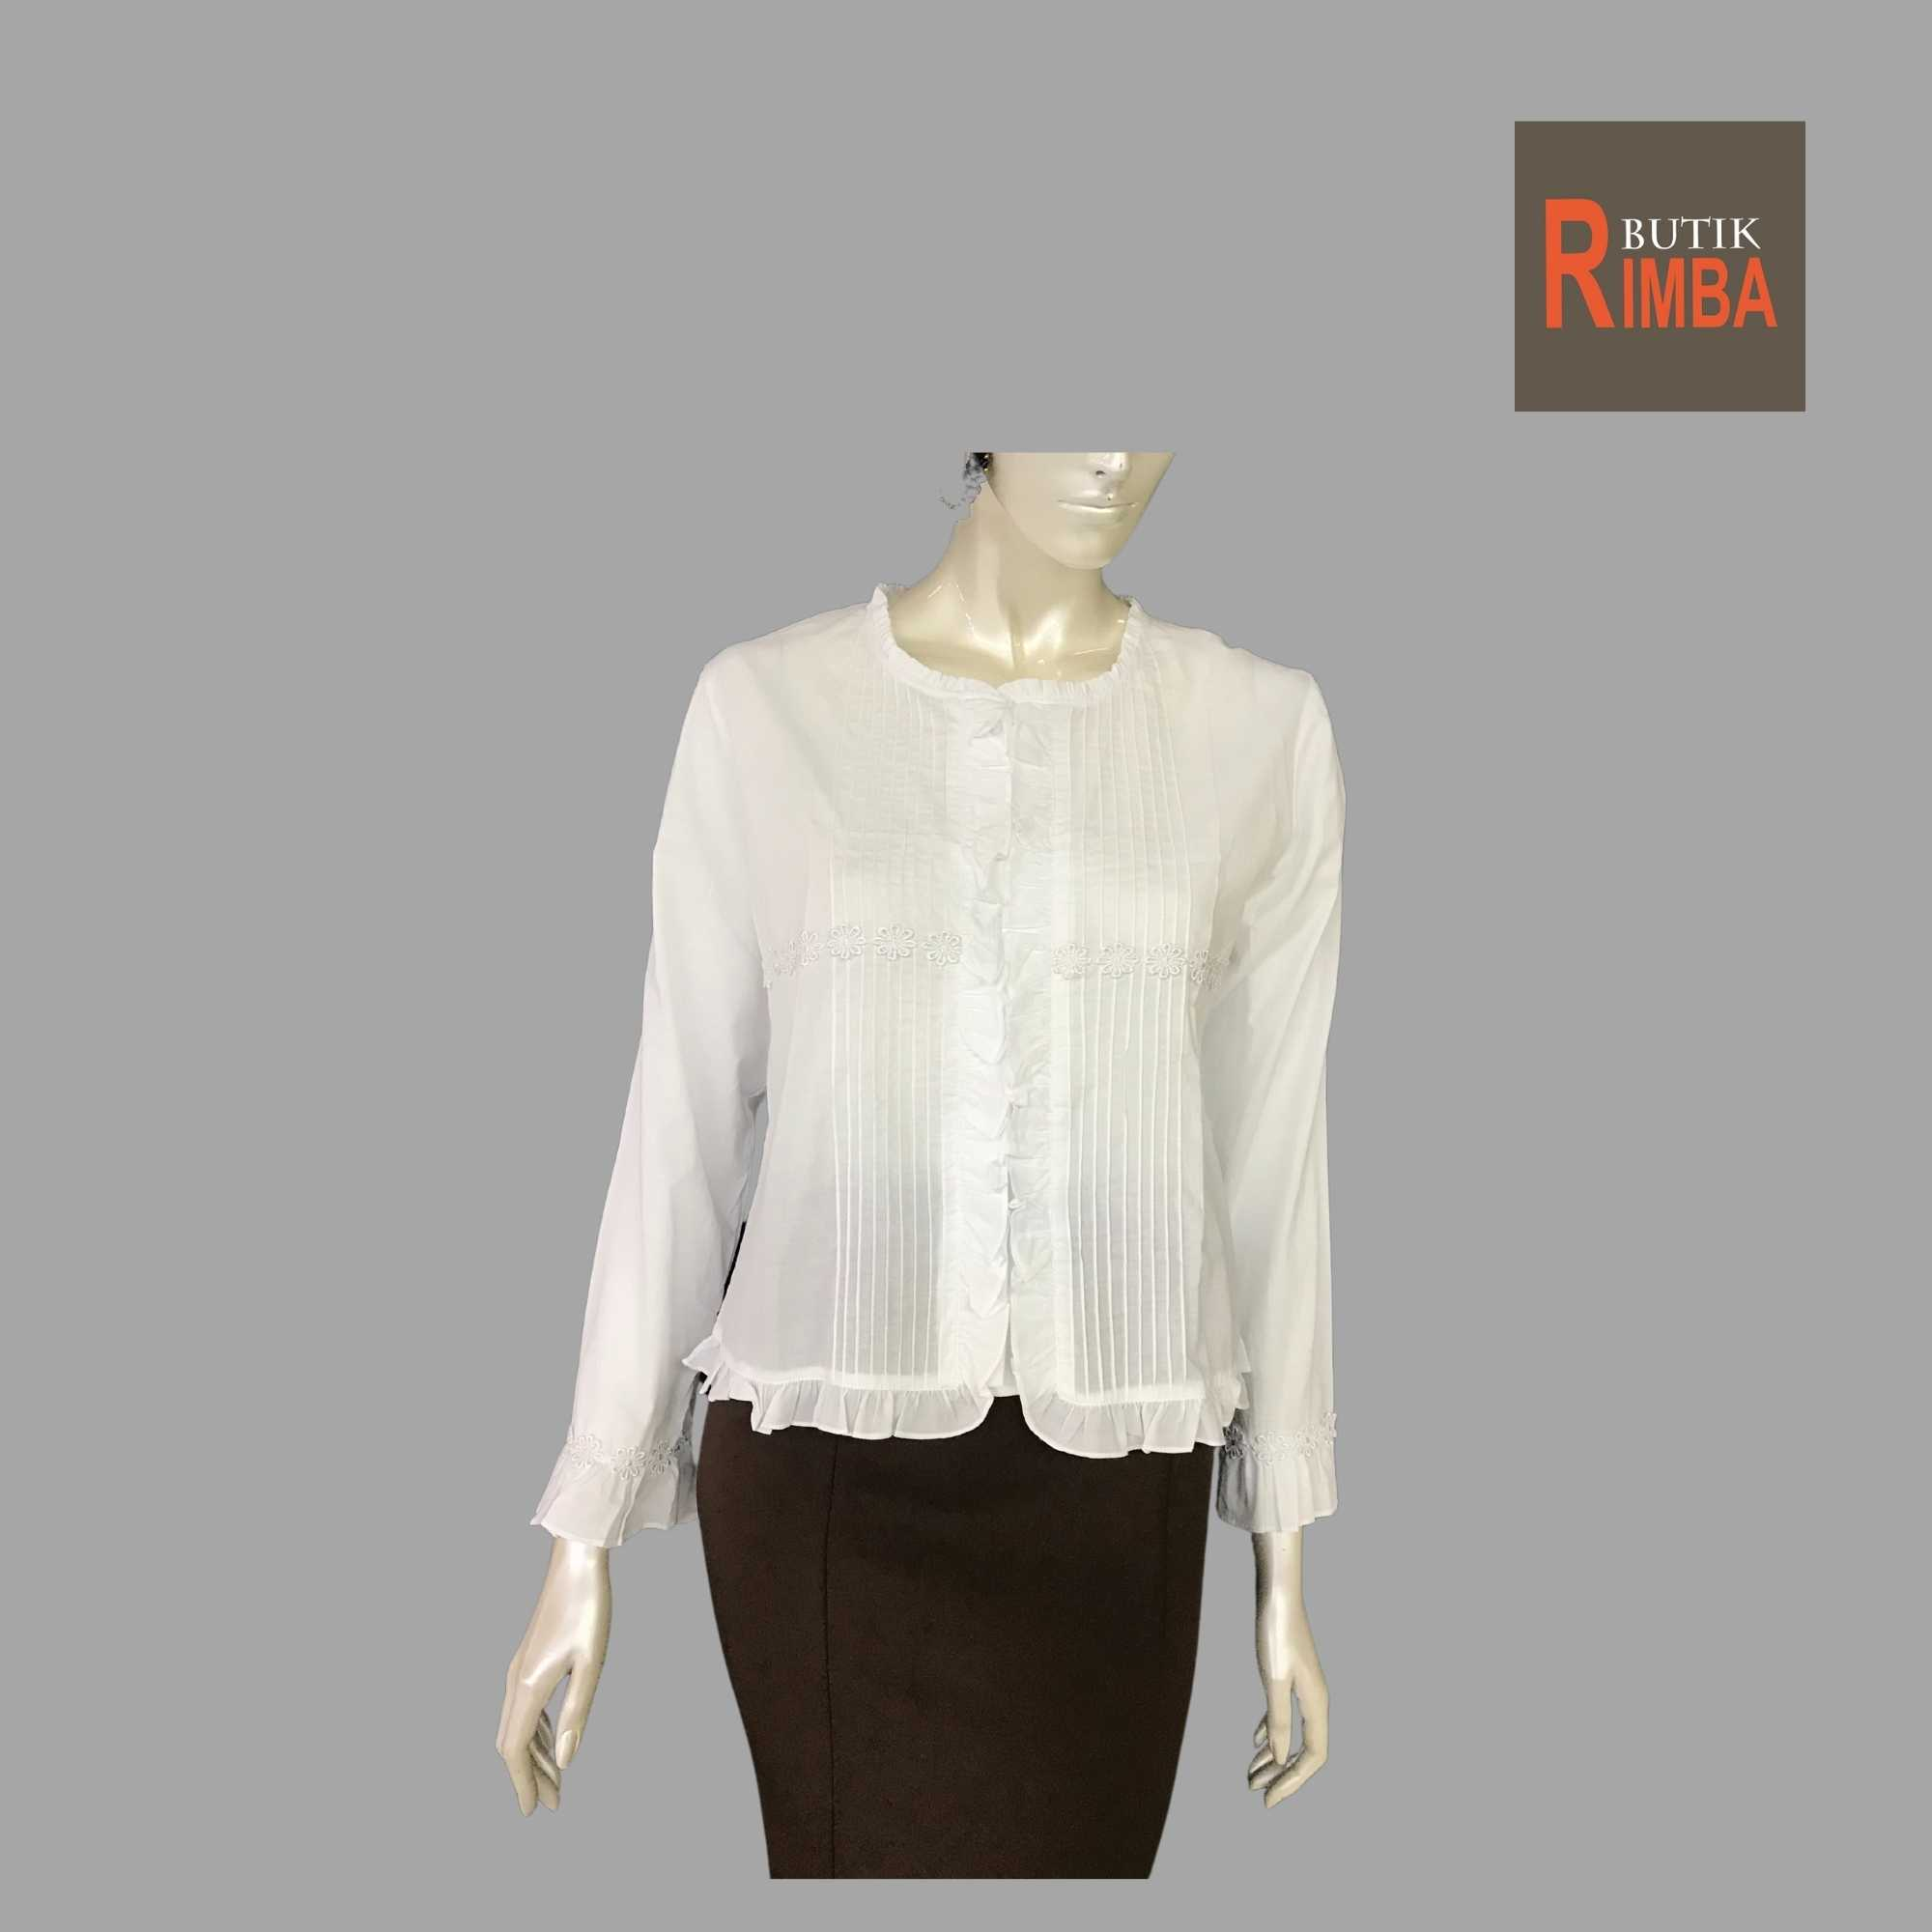 WOMEN CASUAL AND COMFORTABLE WHITE BLOUSE COTTON FREE SIZE PATTERN 12